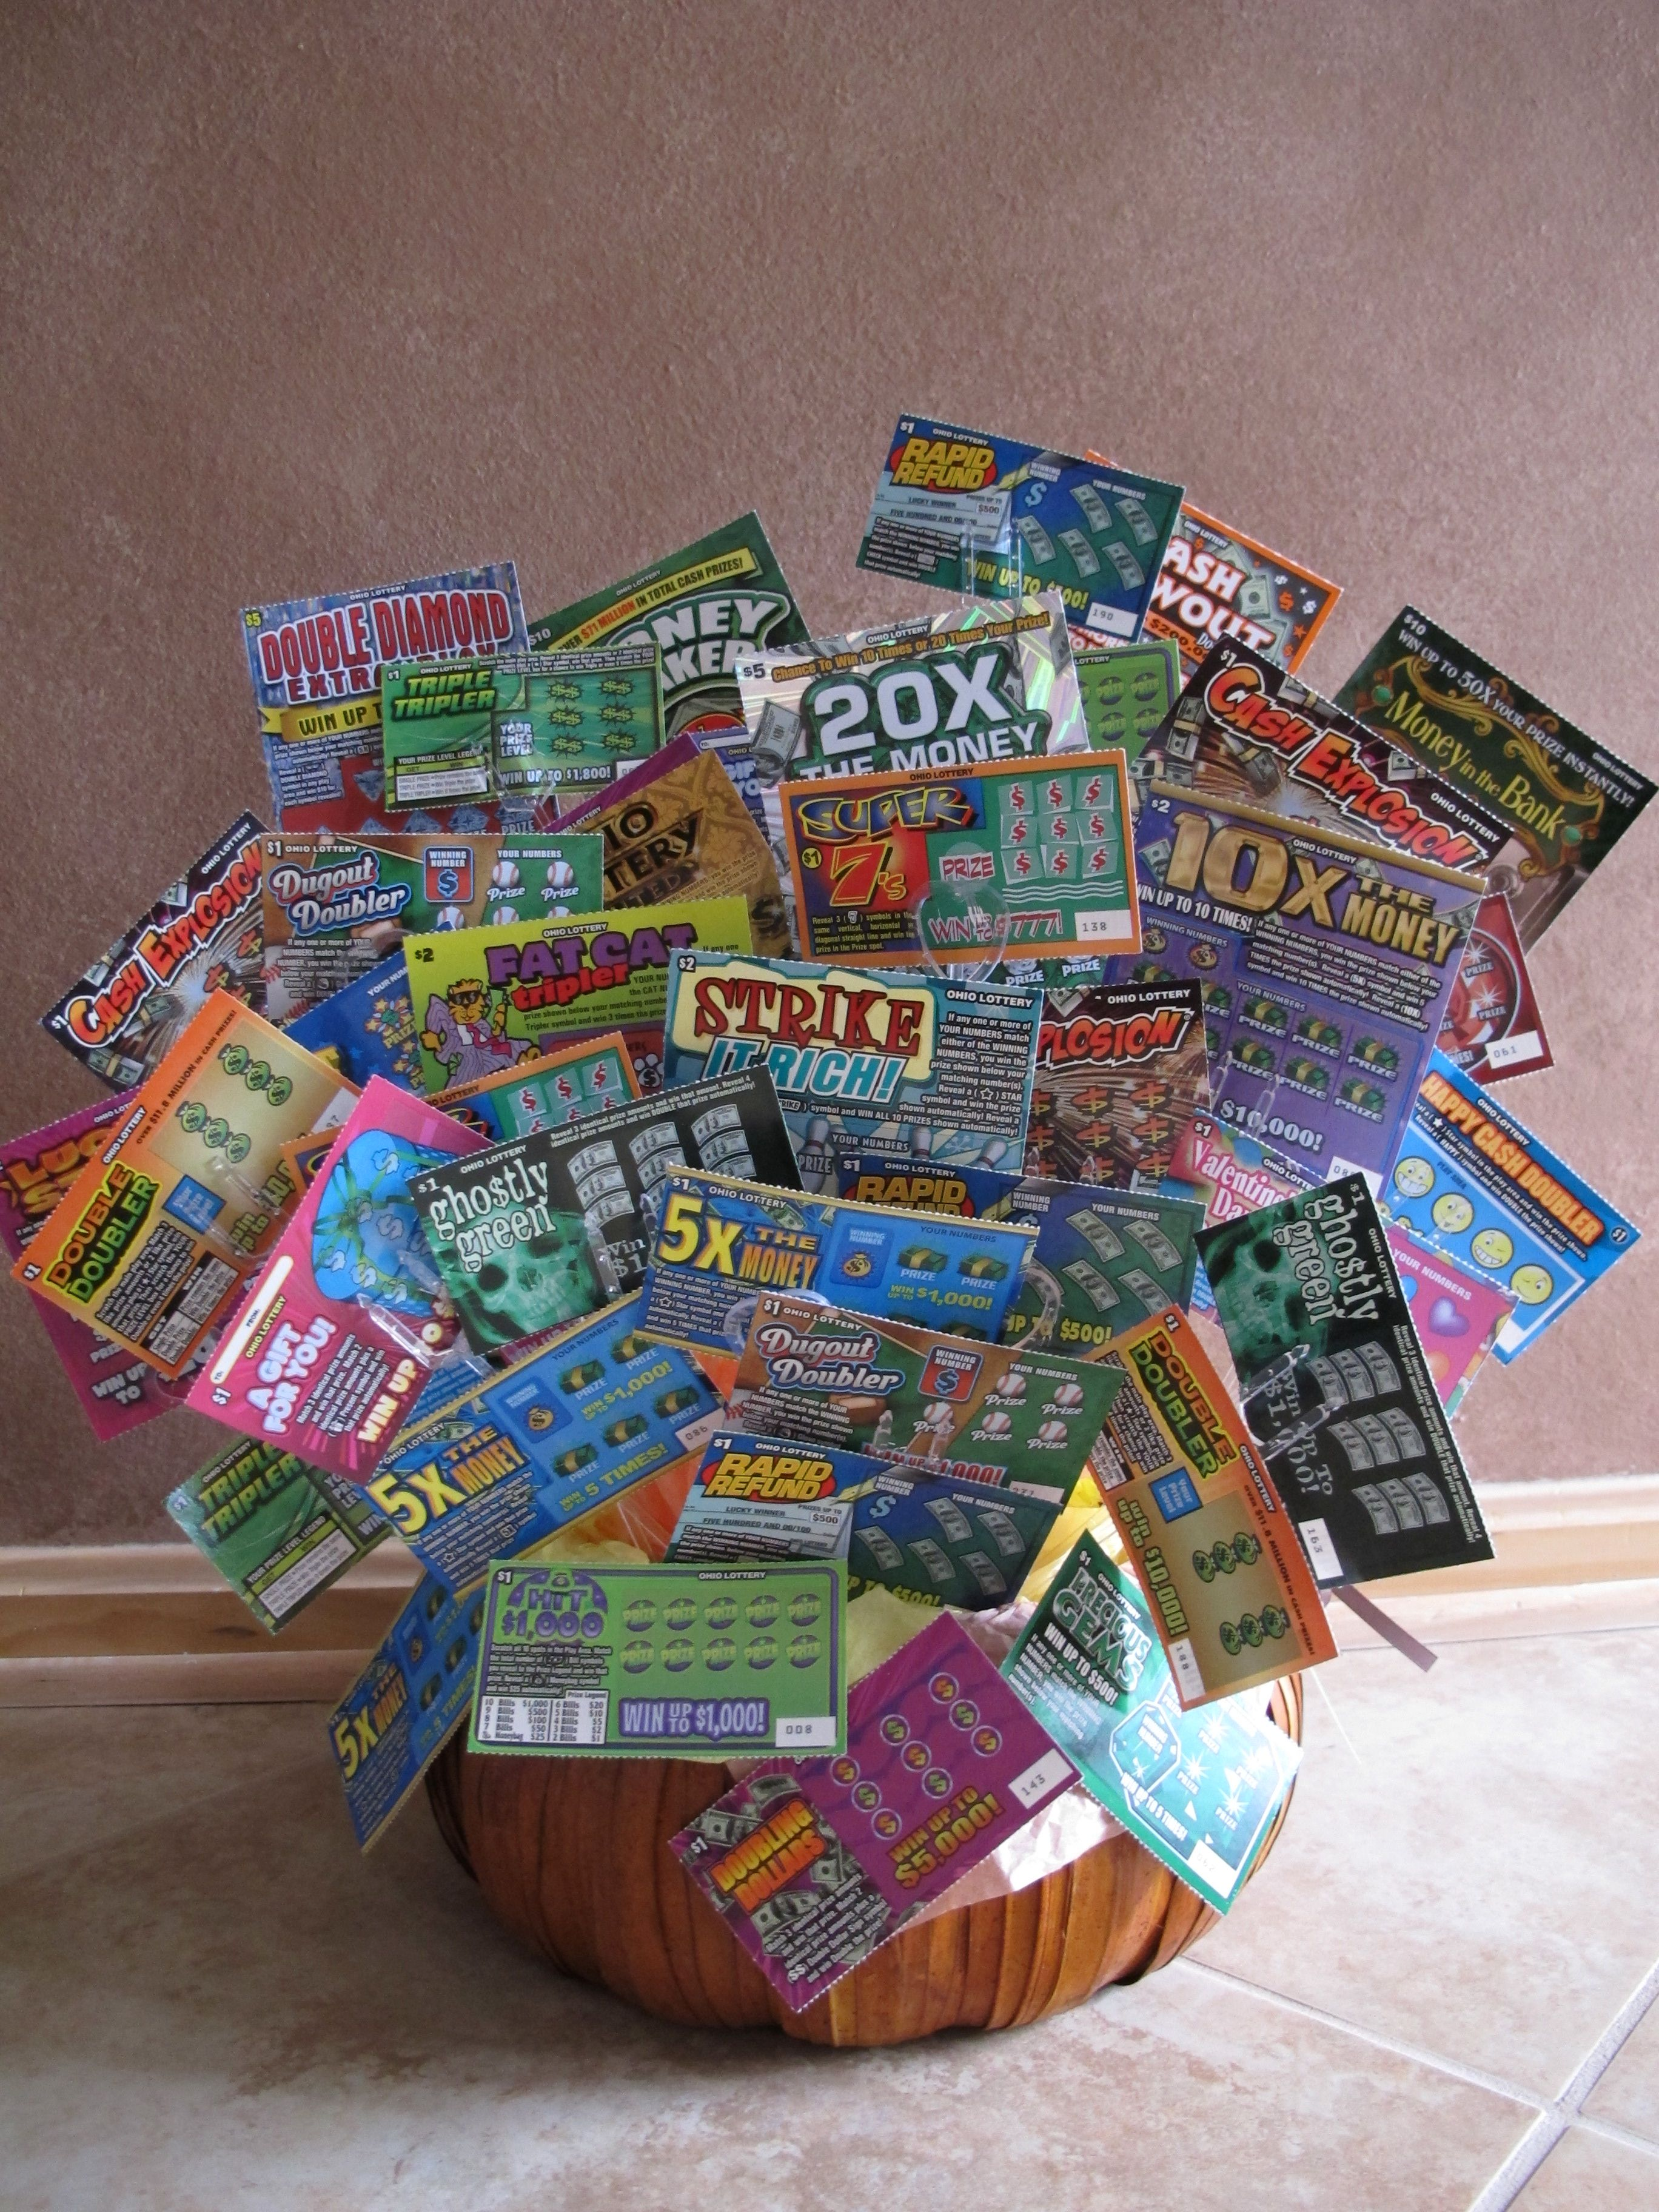 $100 00 Illinois Lottery Instant Ticket Basket just one of